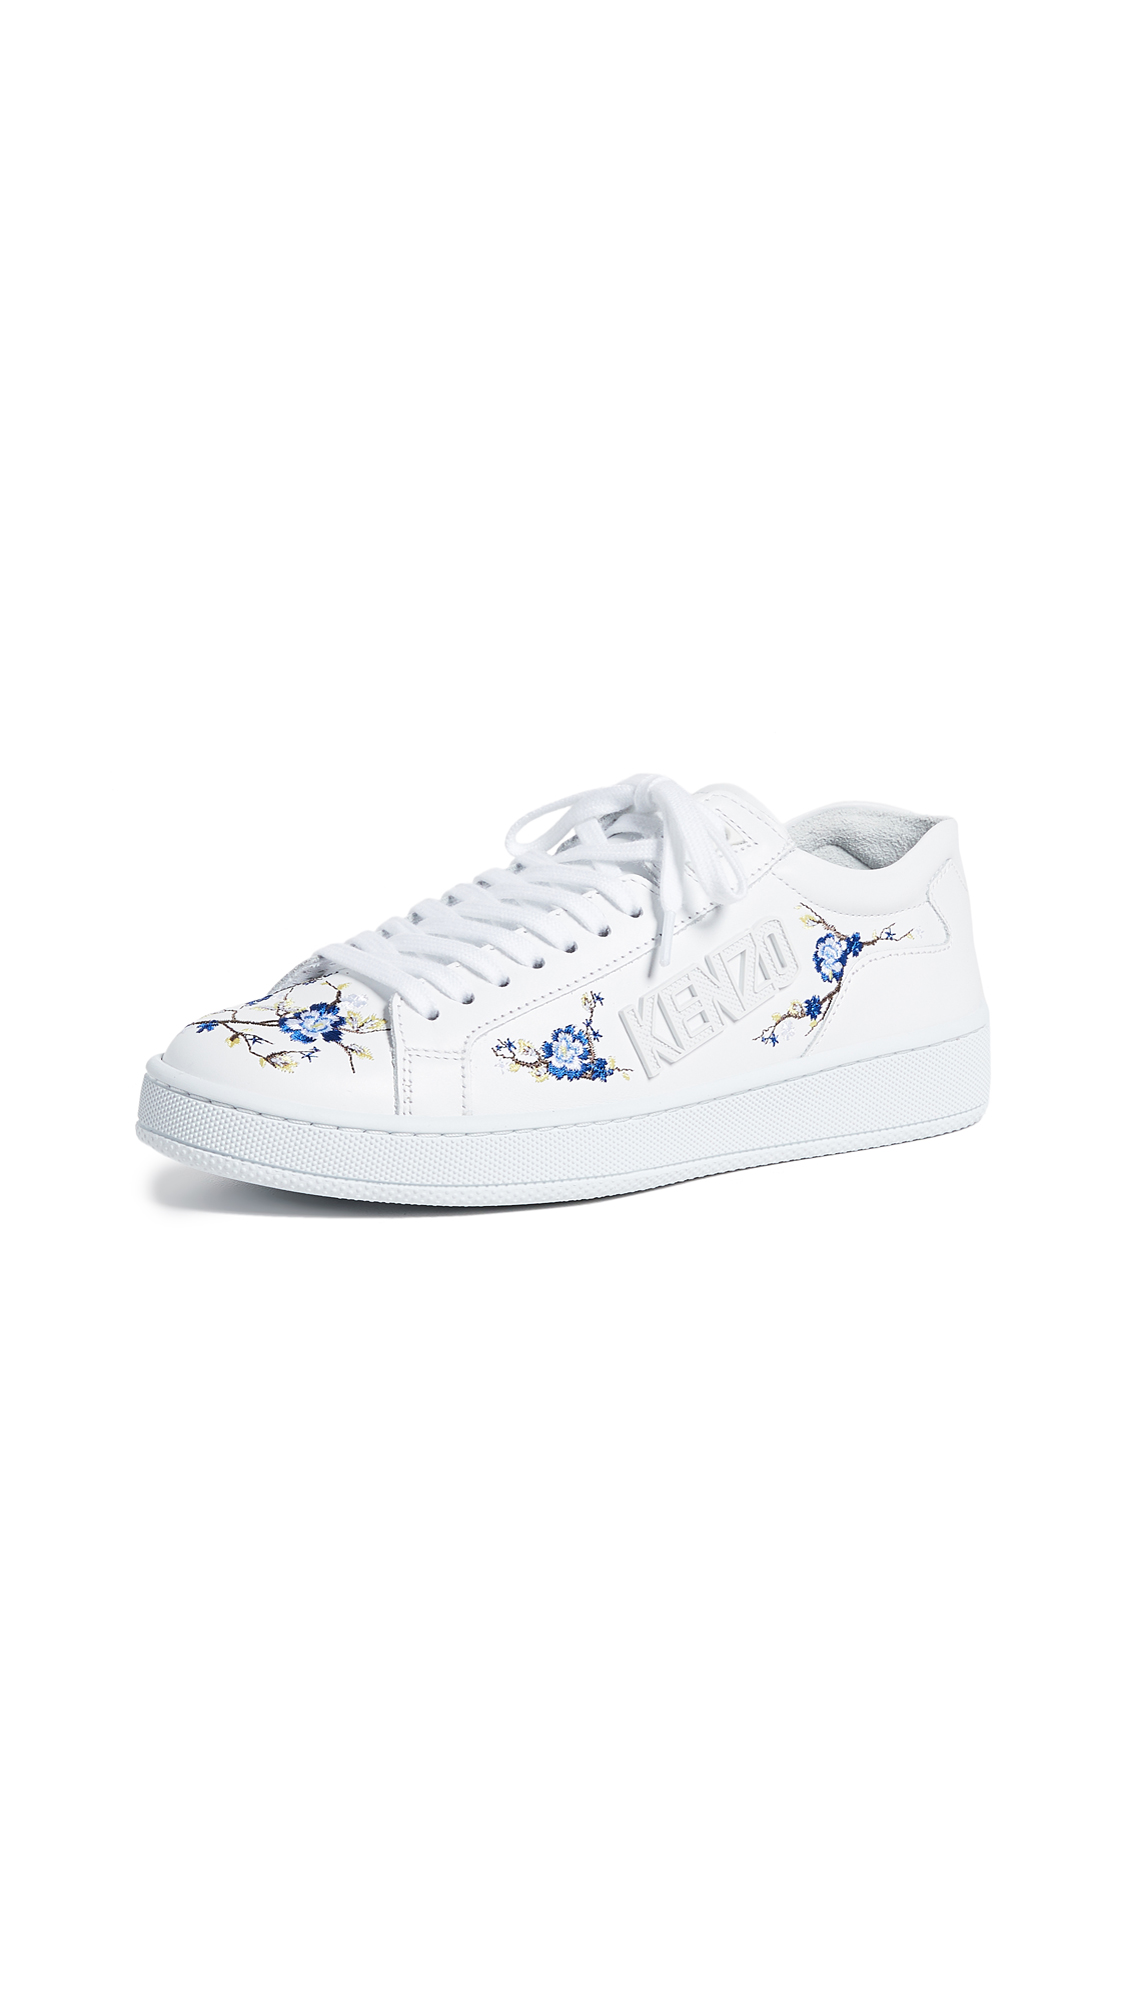 Leather Sneakers With Embroidered Flowers in White